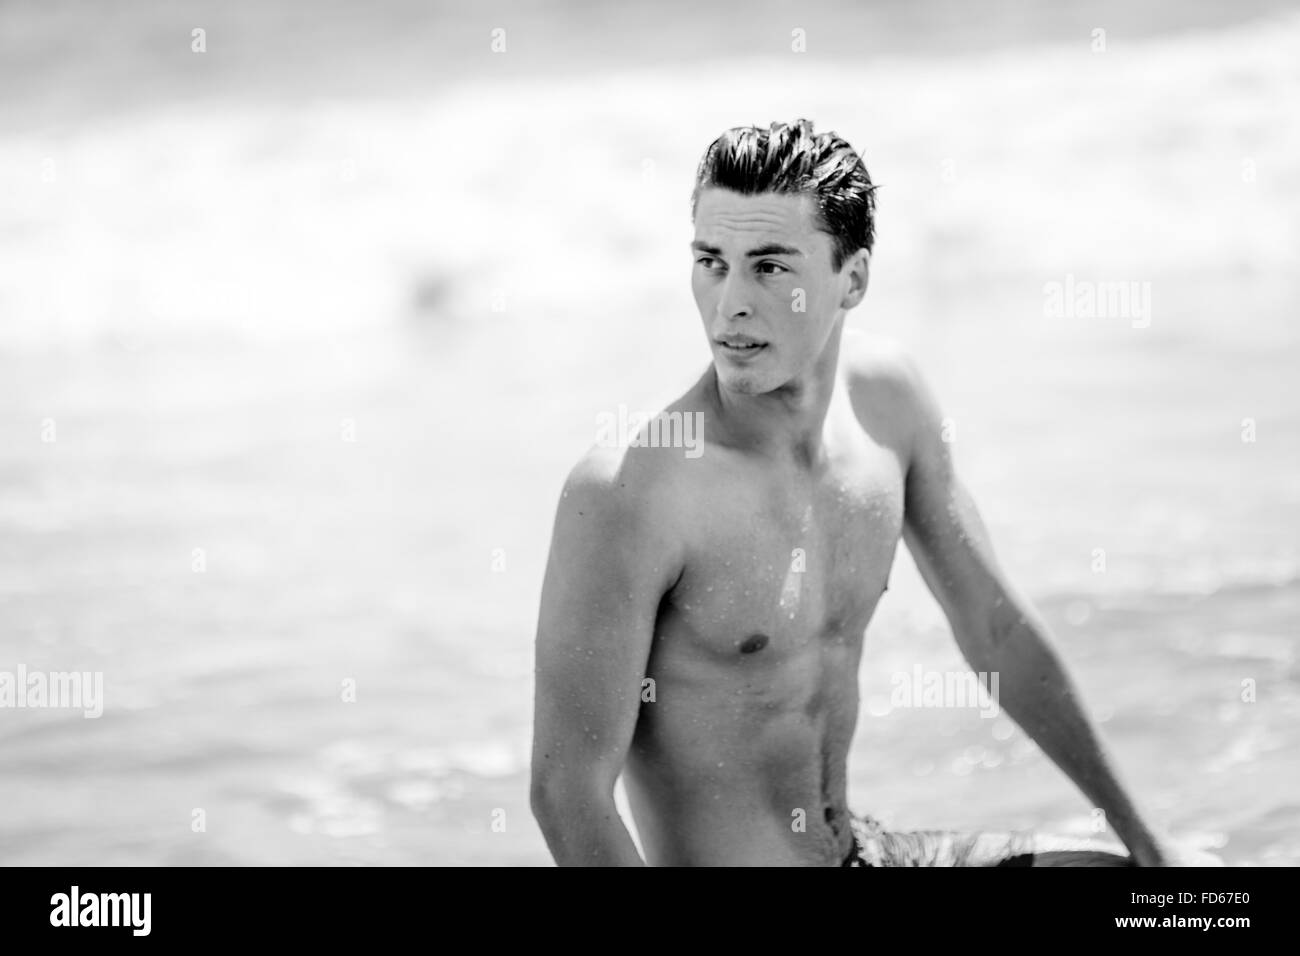 Young Man Sitting At Beach While Looking Away - Stock Image